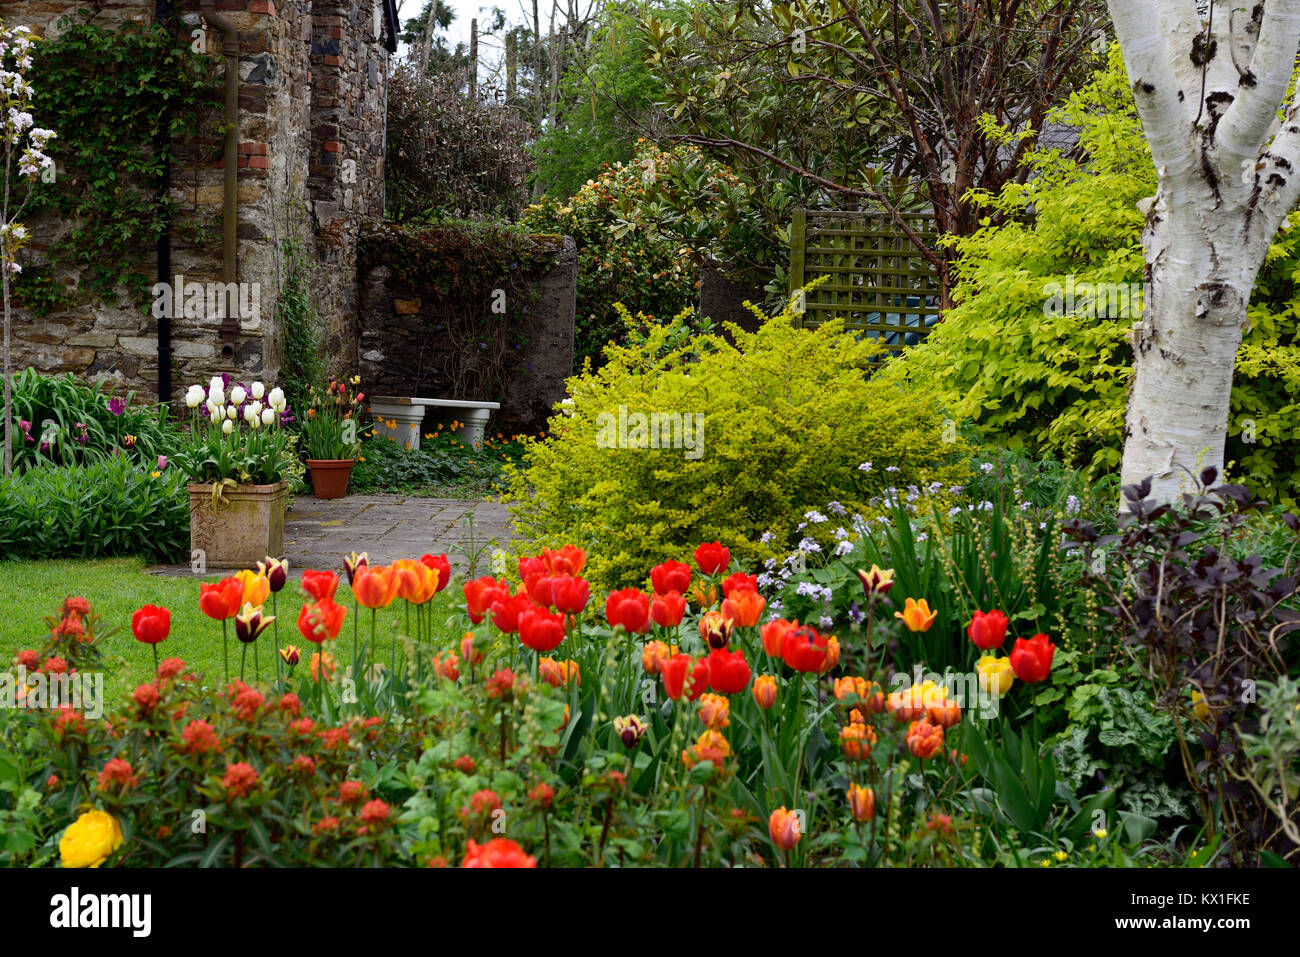 Tulipa angels wish,tulipa apeldoorn elite,darwin hybrid,red,tulip,flowers,display,The Bay Garden,Camolin,RM Floral - Stock Image